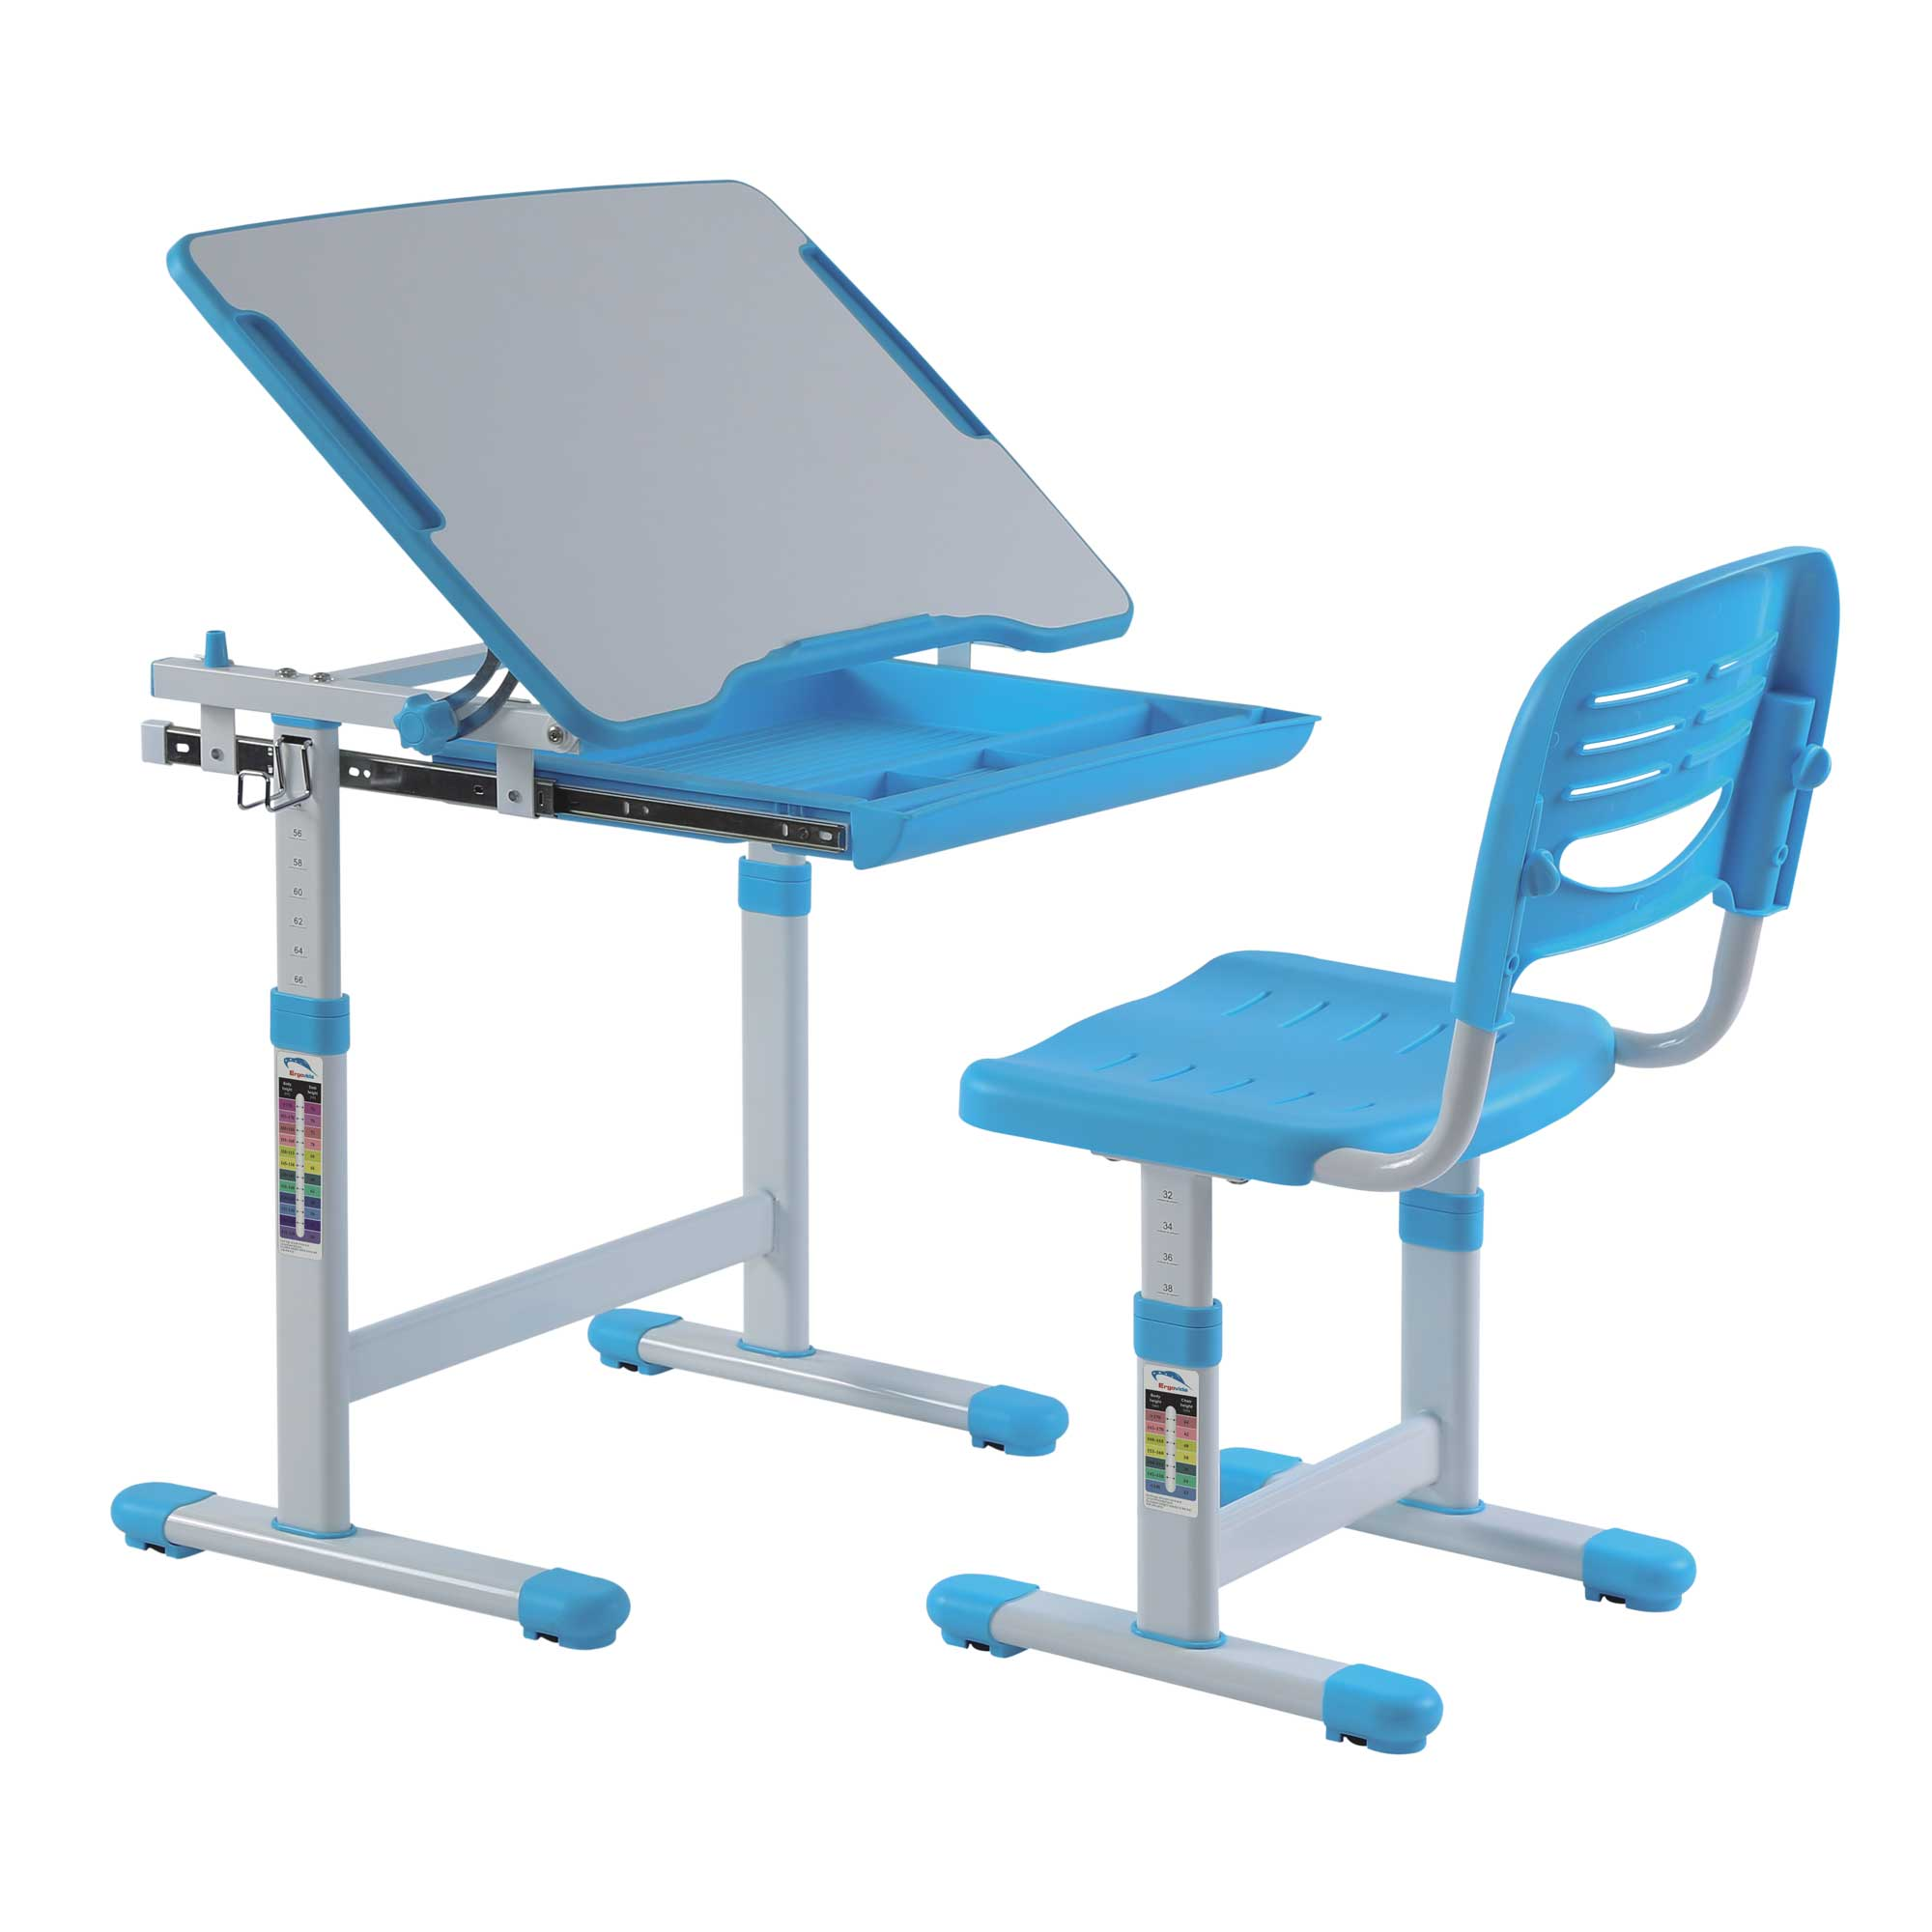 Ergonomic-Kids-Desk-Chair-Height-Adjustable-Kids-Table-Study-Desk-Blue-Desk-01